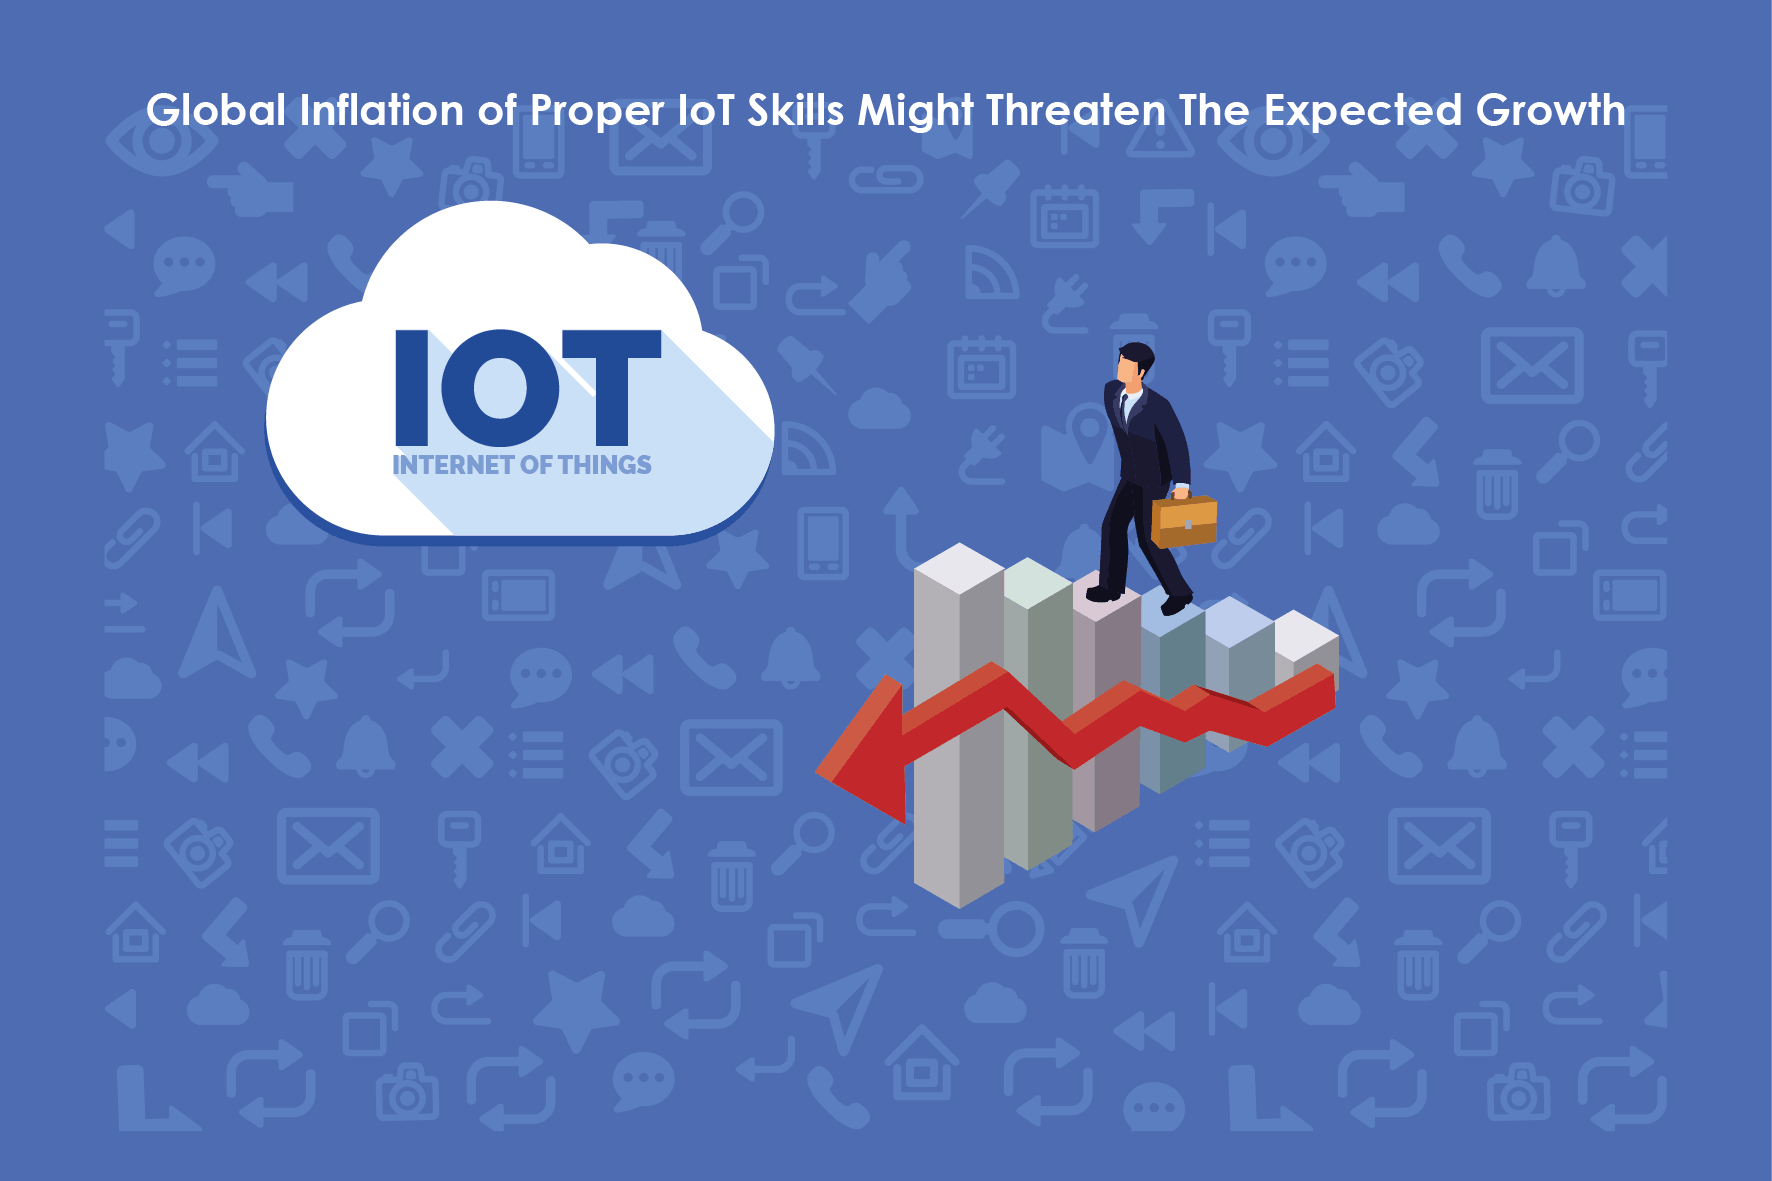 Global Inflation of Proper IoT Skills Might Threaten The Expected Growth